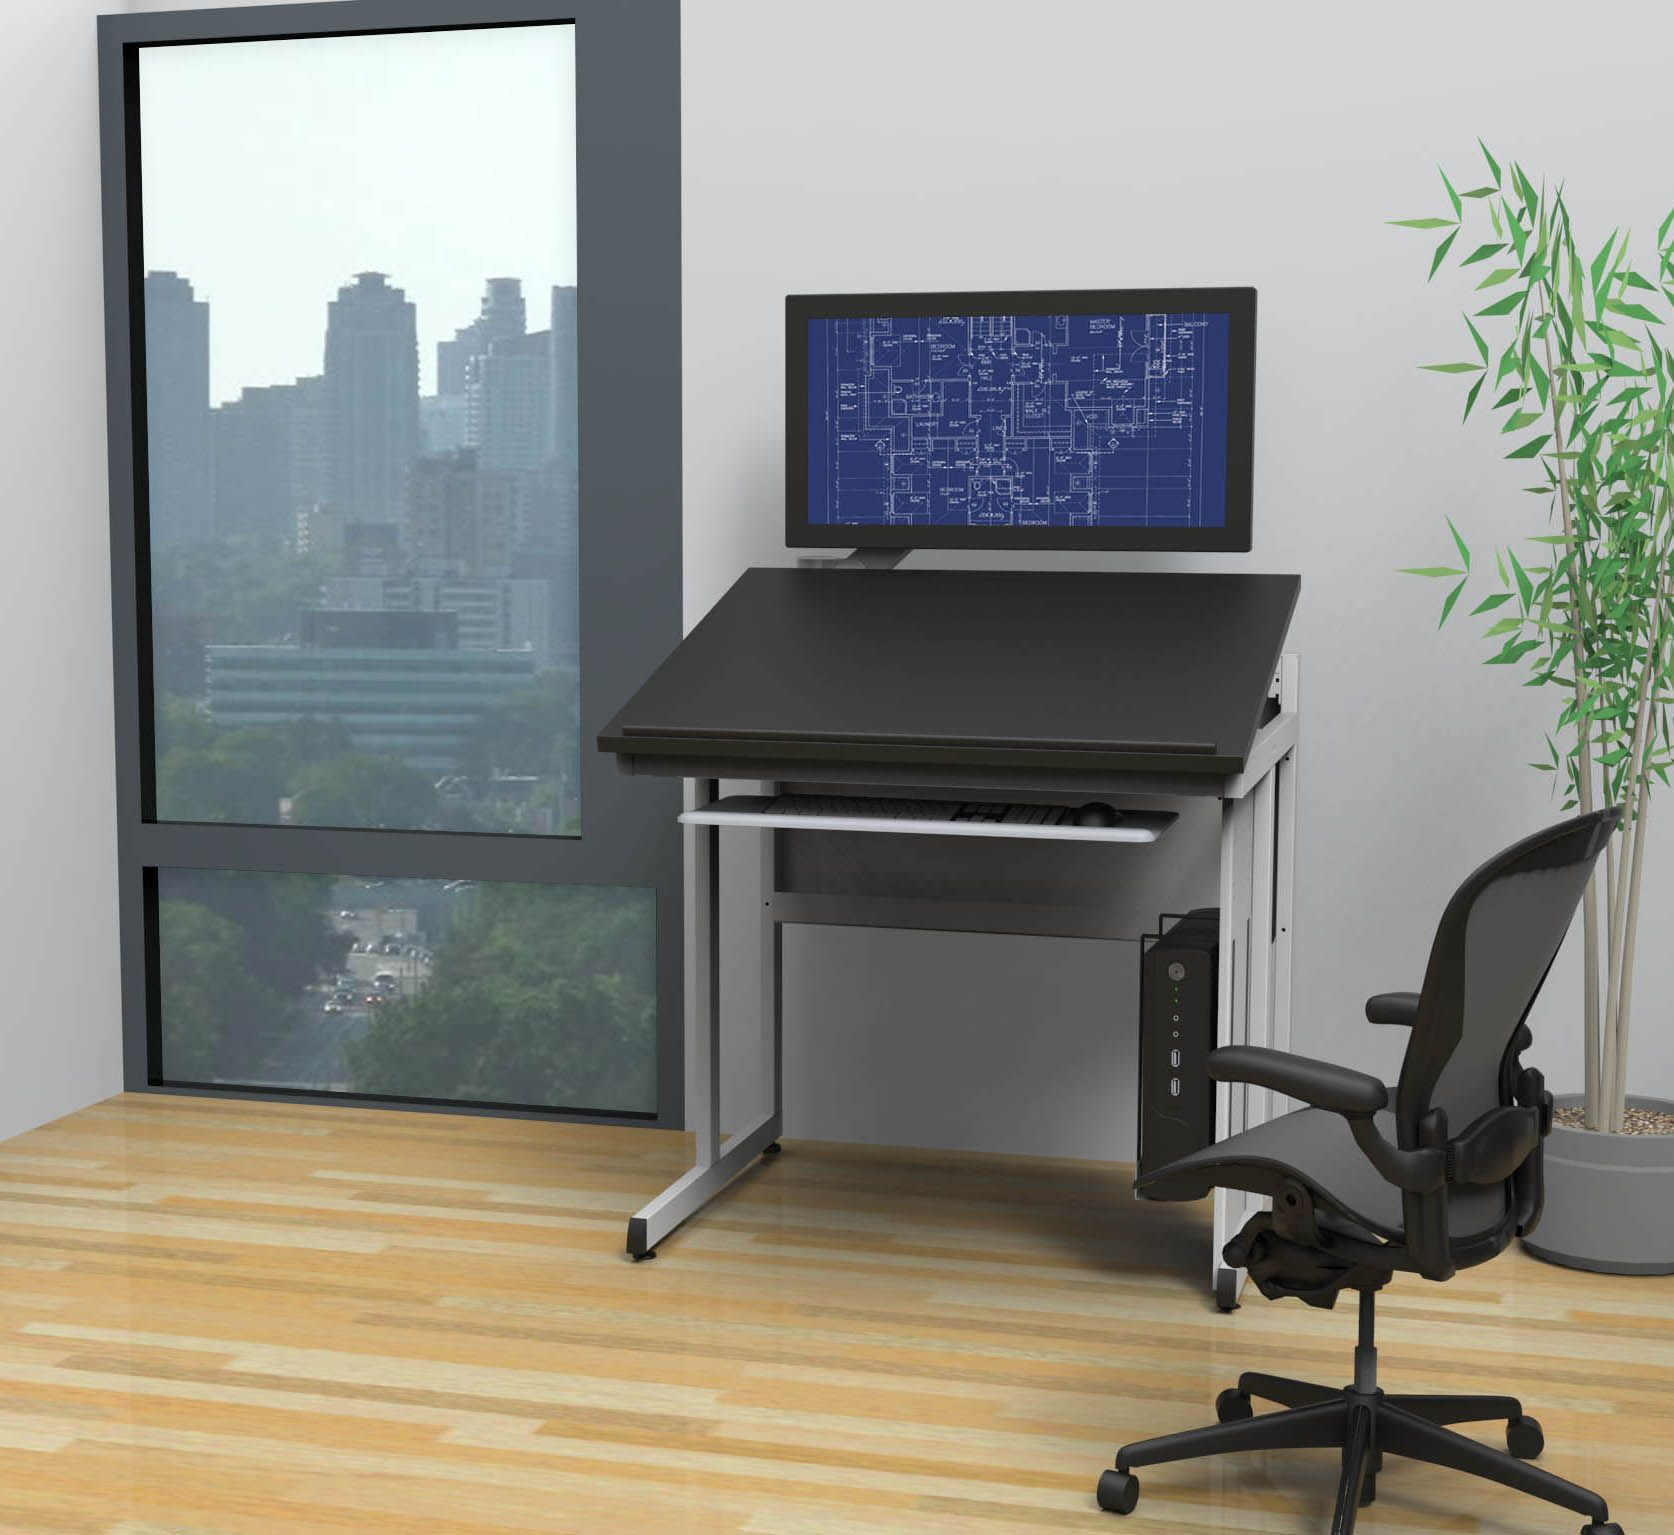 Cad drafting table an ideal solution for learning for Office design manual